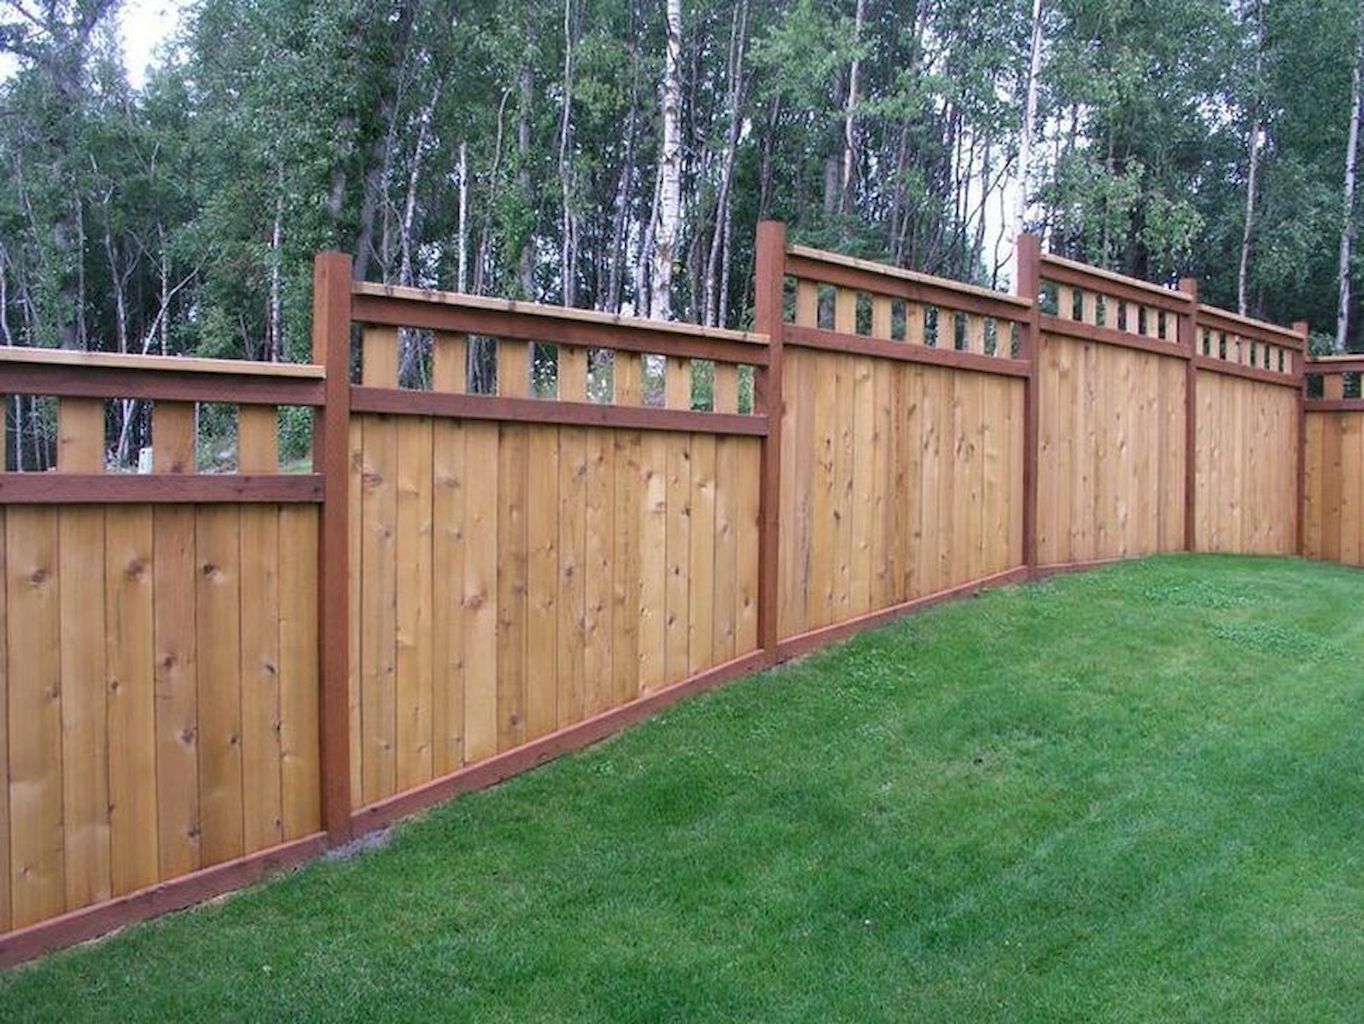 75 Easy Cheap Backyard Privacy Fence Design Ideas - HomeSpecially